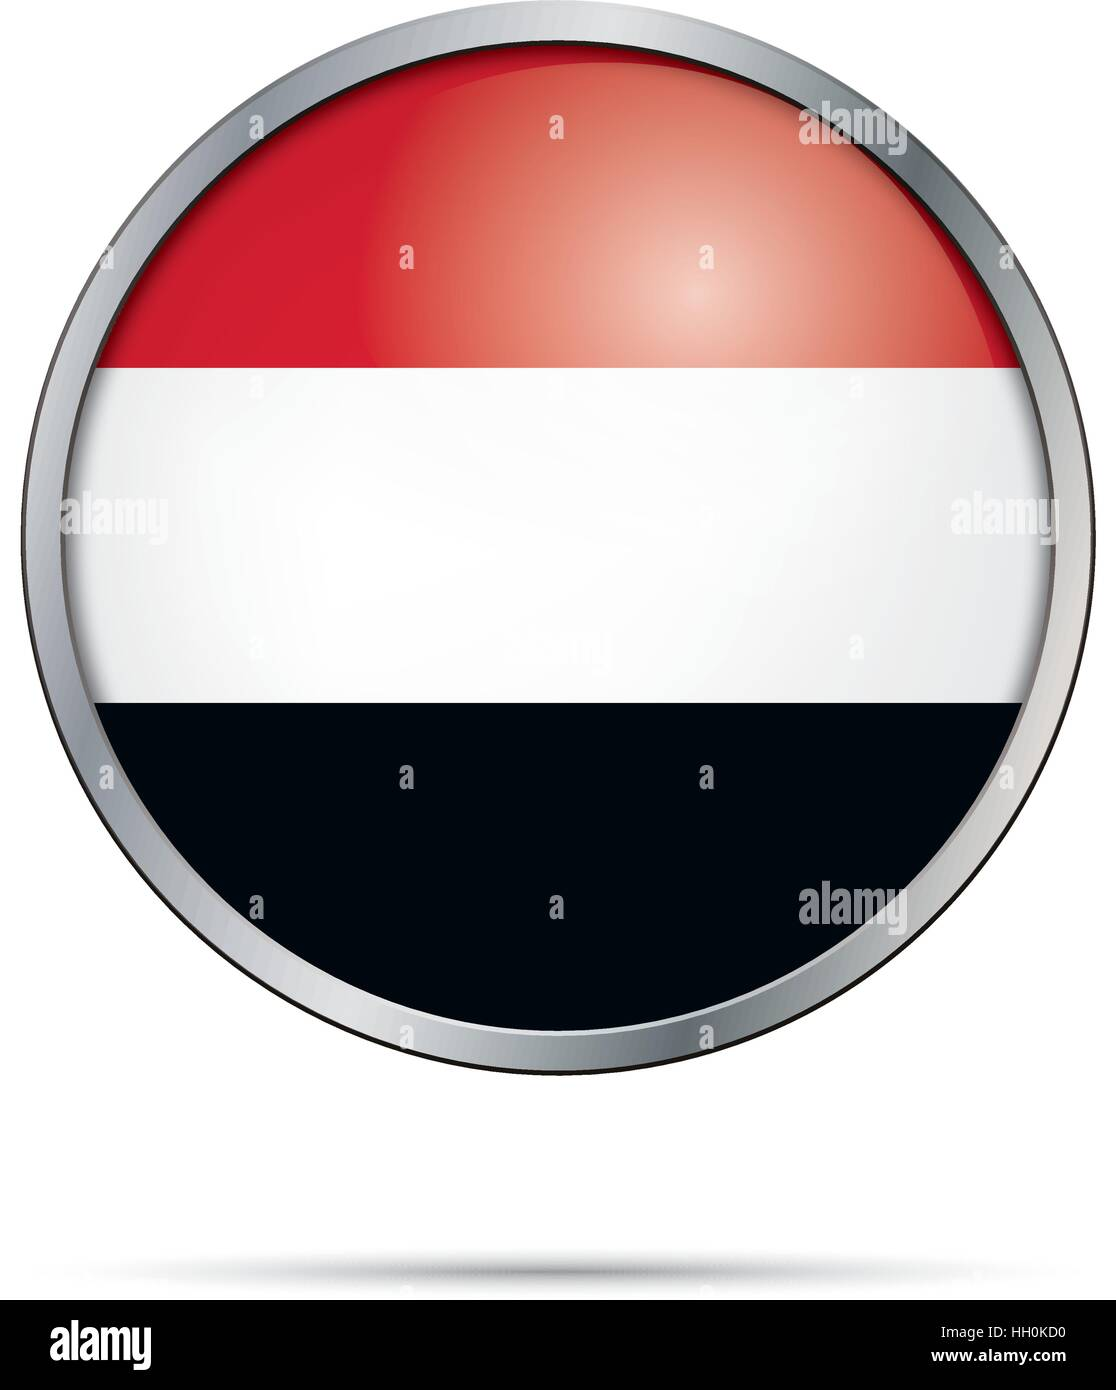 Vector Yemenite flag Button. Yemen flag in glass button style with metal frame. - Stock Vector